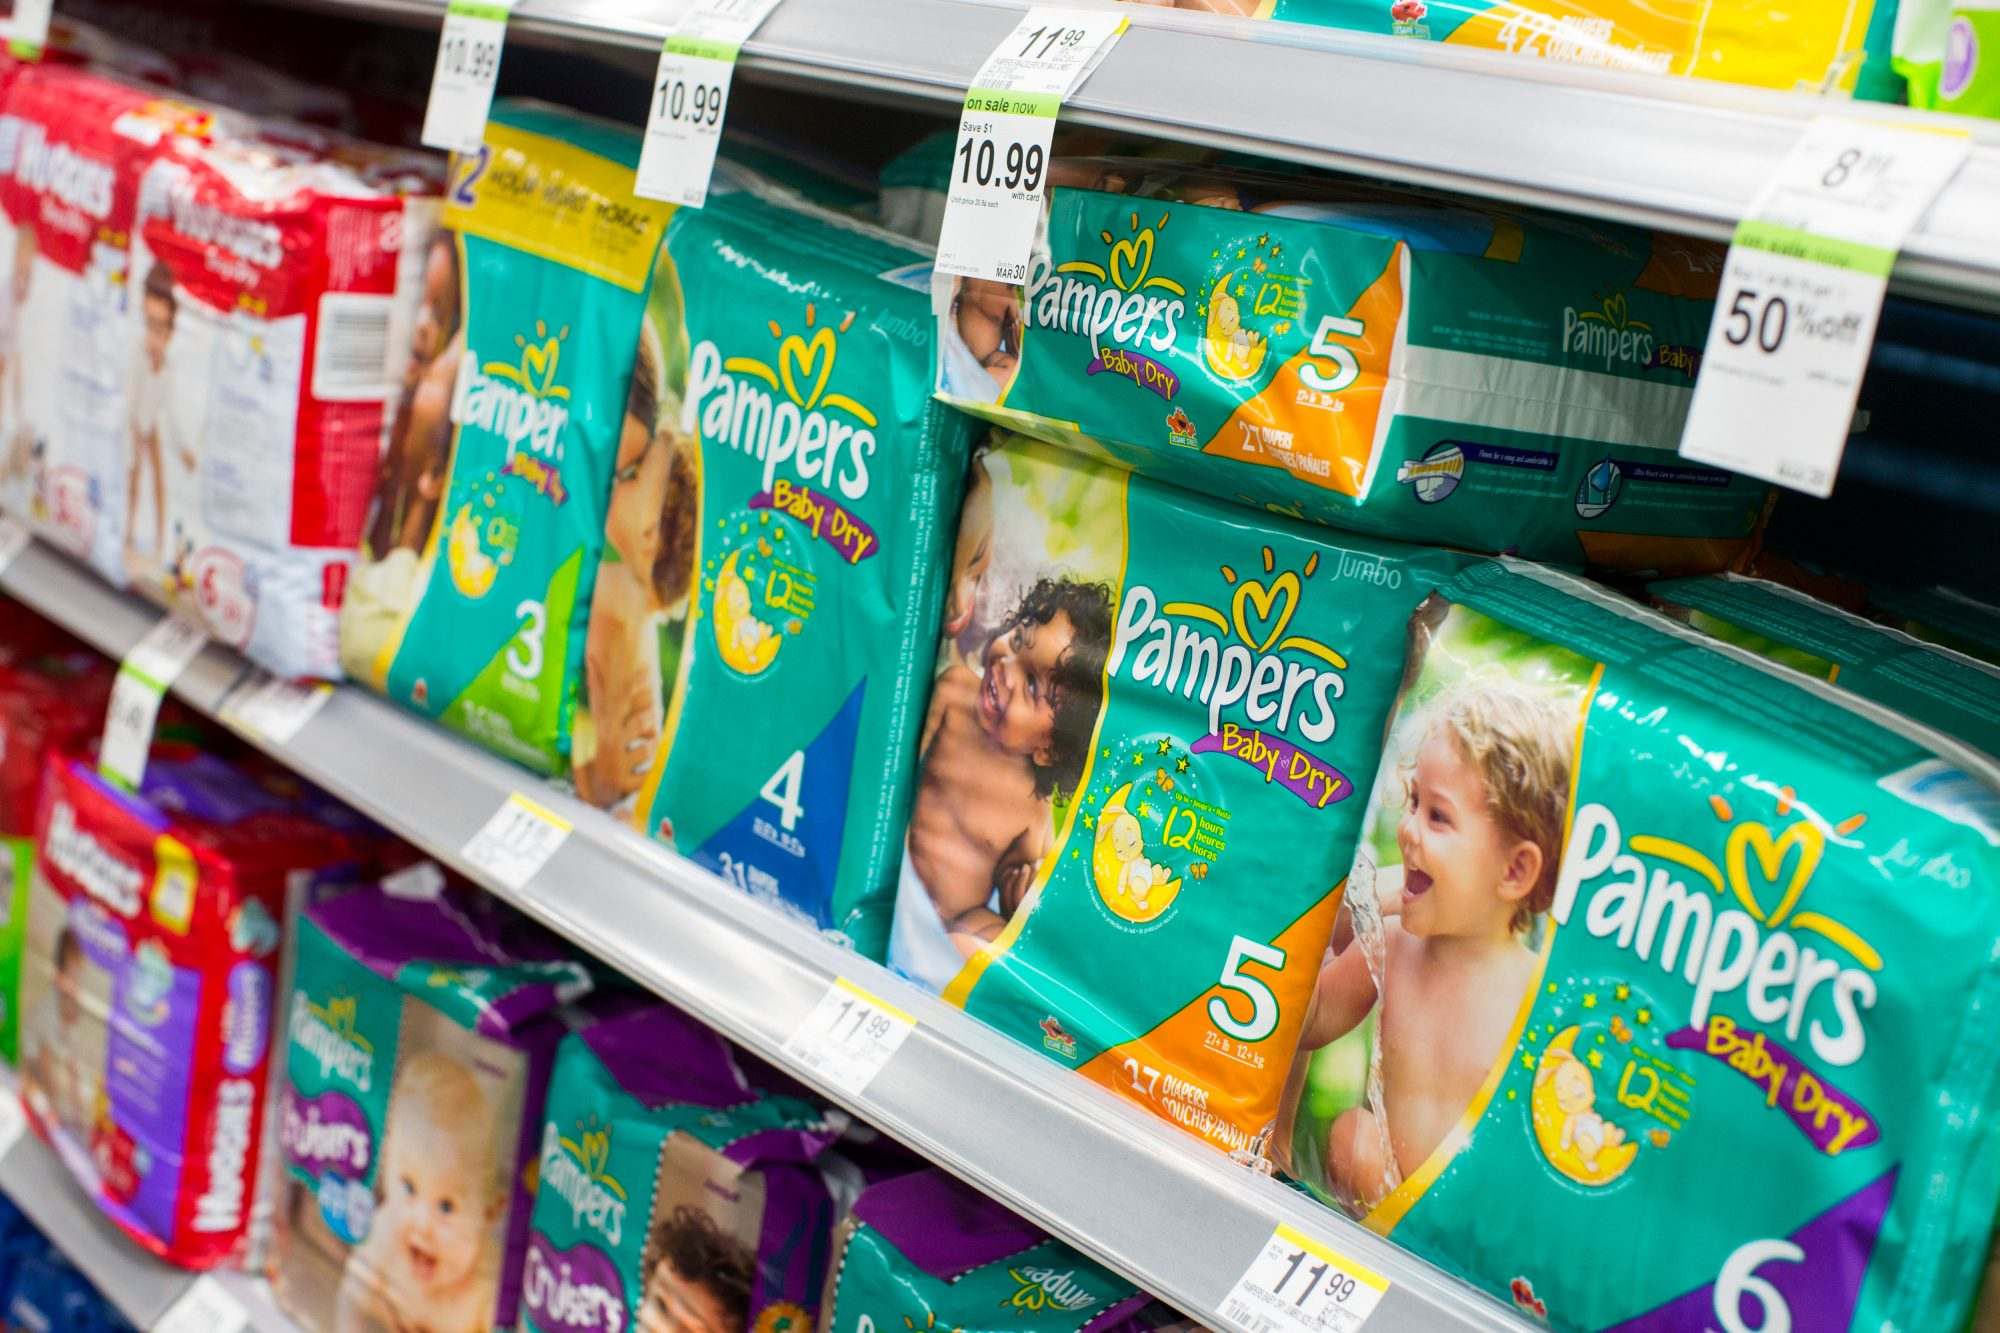 Pampers diapers on display at a store.